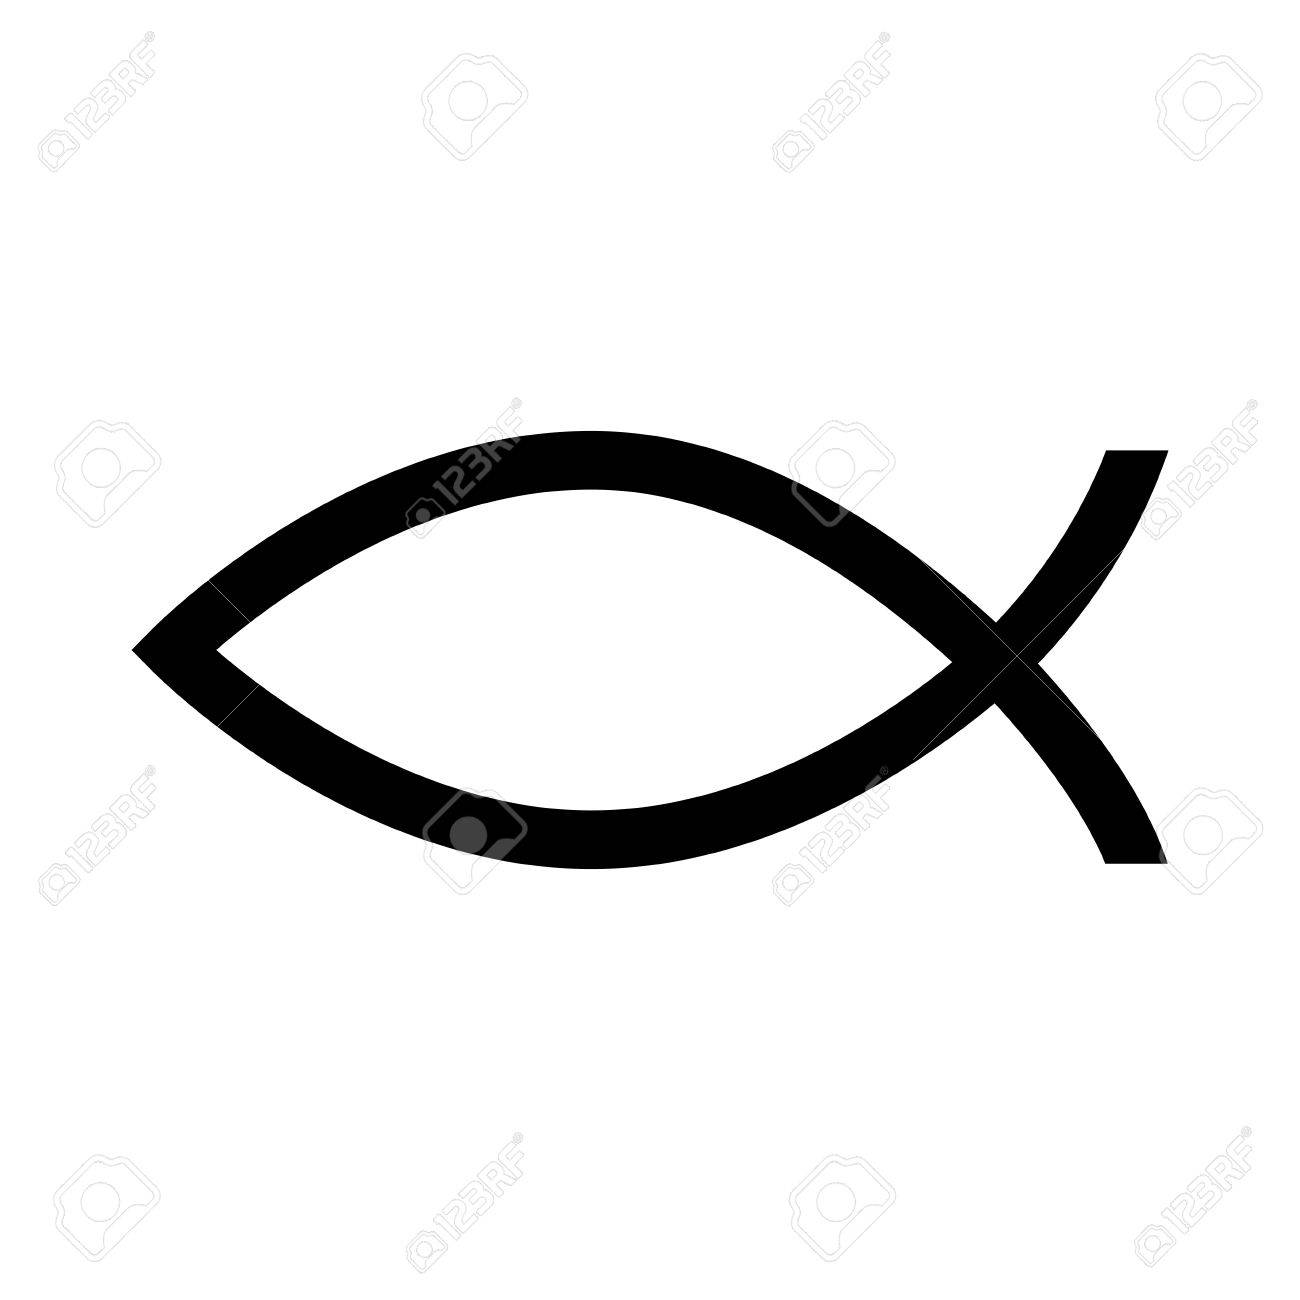 fish christian religious christ symbolic biblical silhouette rh 123rf com  christian fish symbol vector free